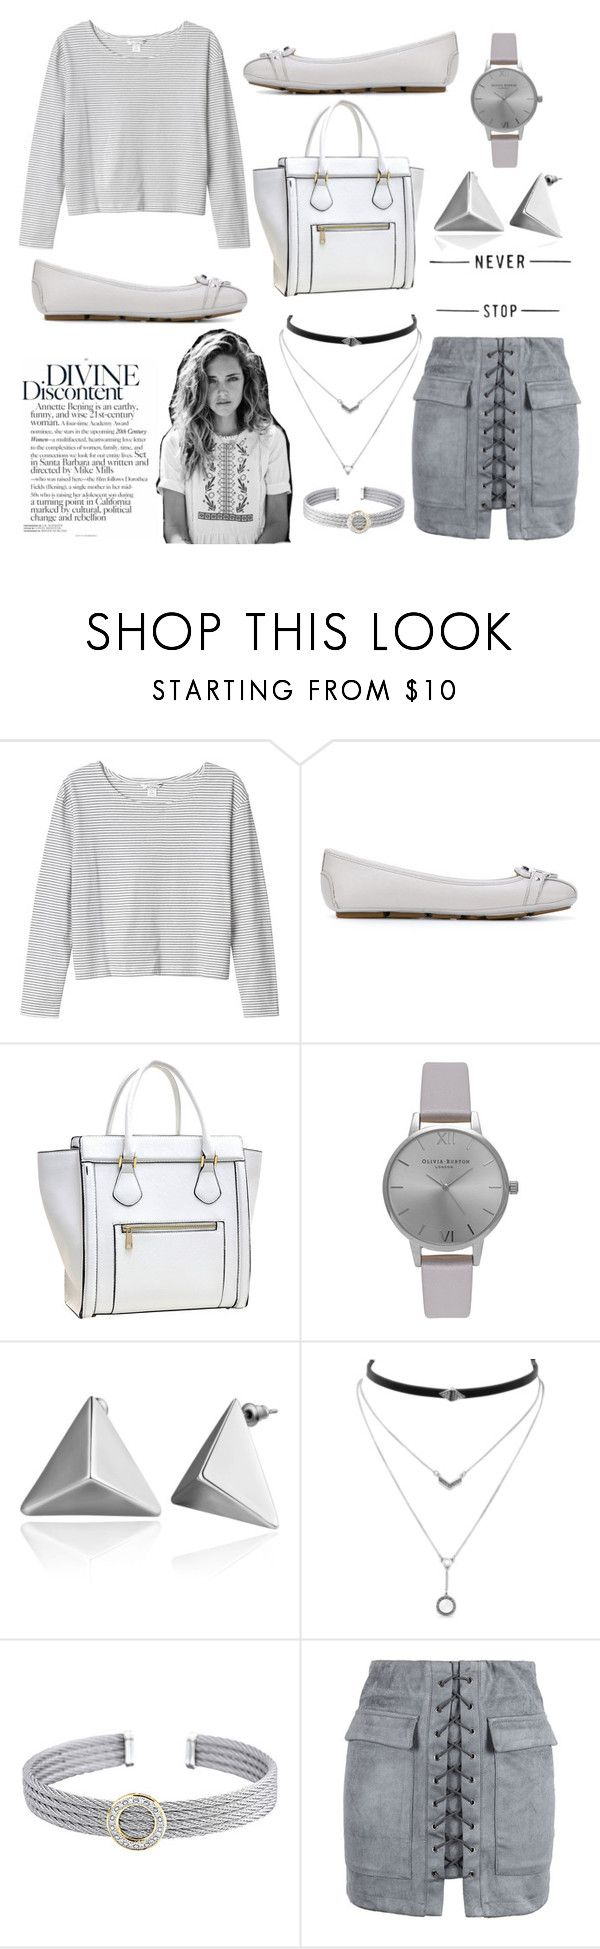 """""""Gray and simple"""" by the-tossing-tides ❤ liked on Polyvore featuring Monki, MICHAEL Michael Kors, Dasein, Olivia Burton, Jessica Simpson, Alor and WithChic"""